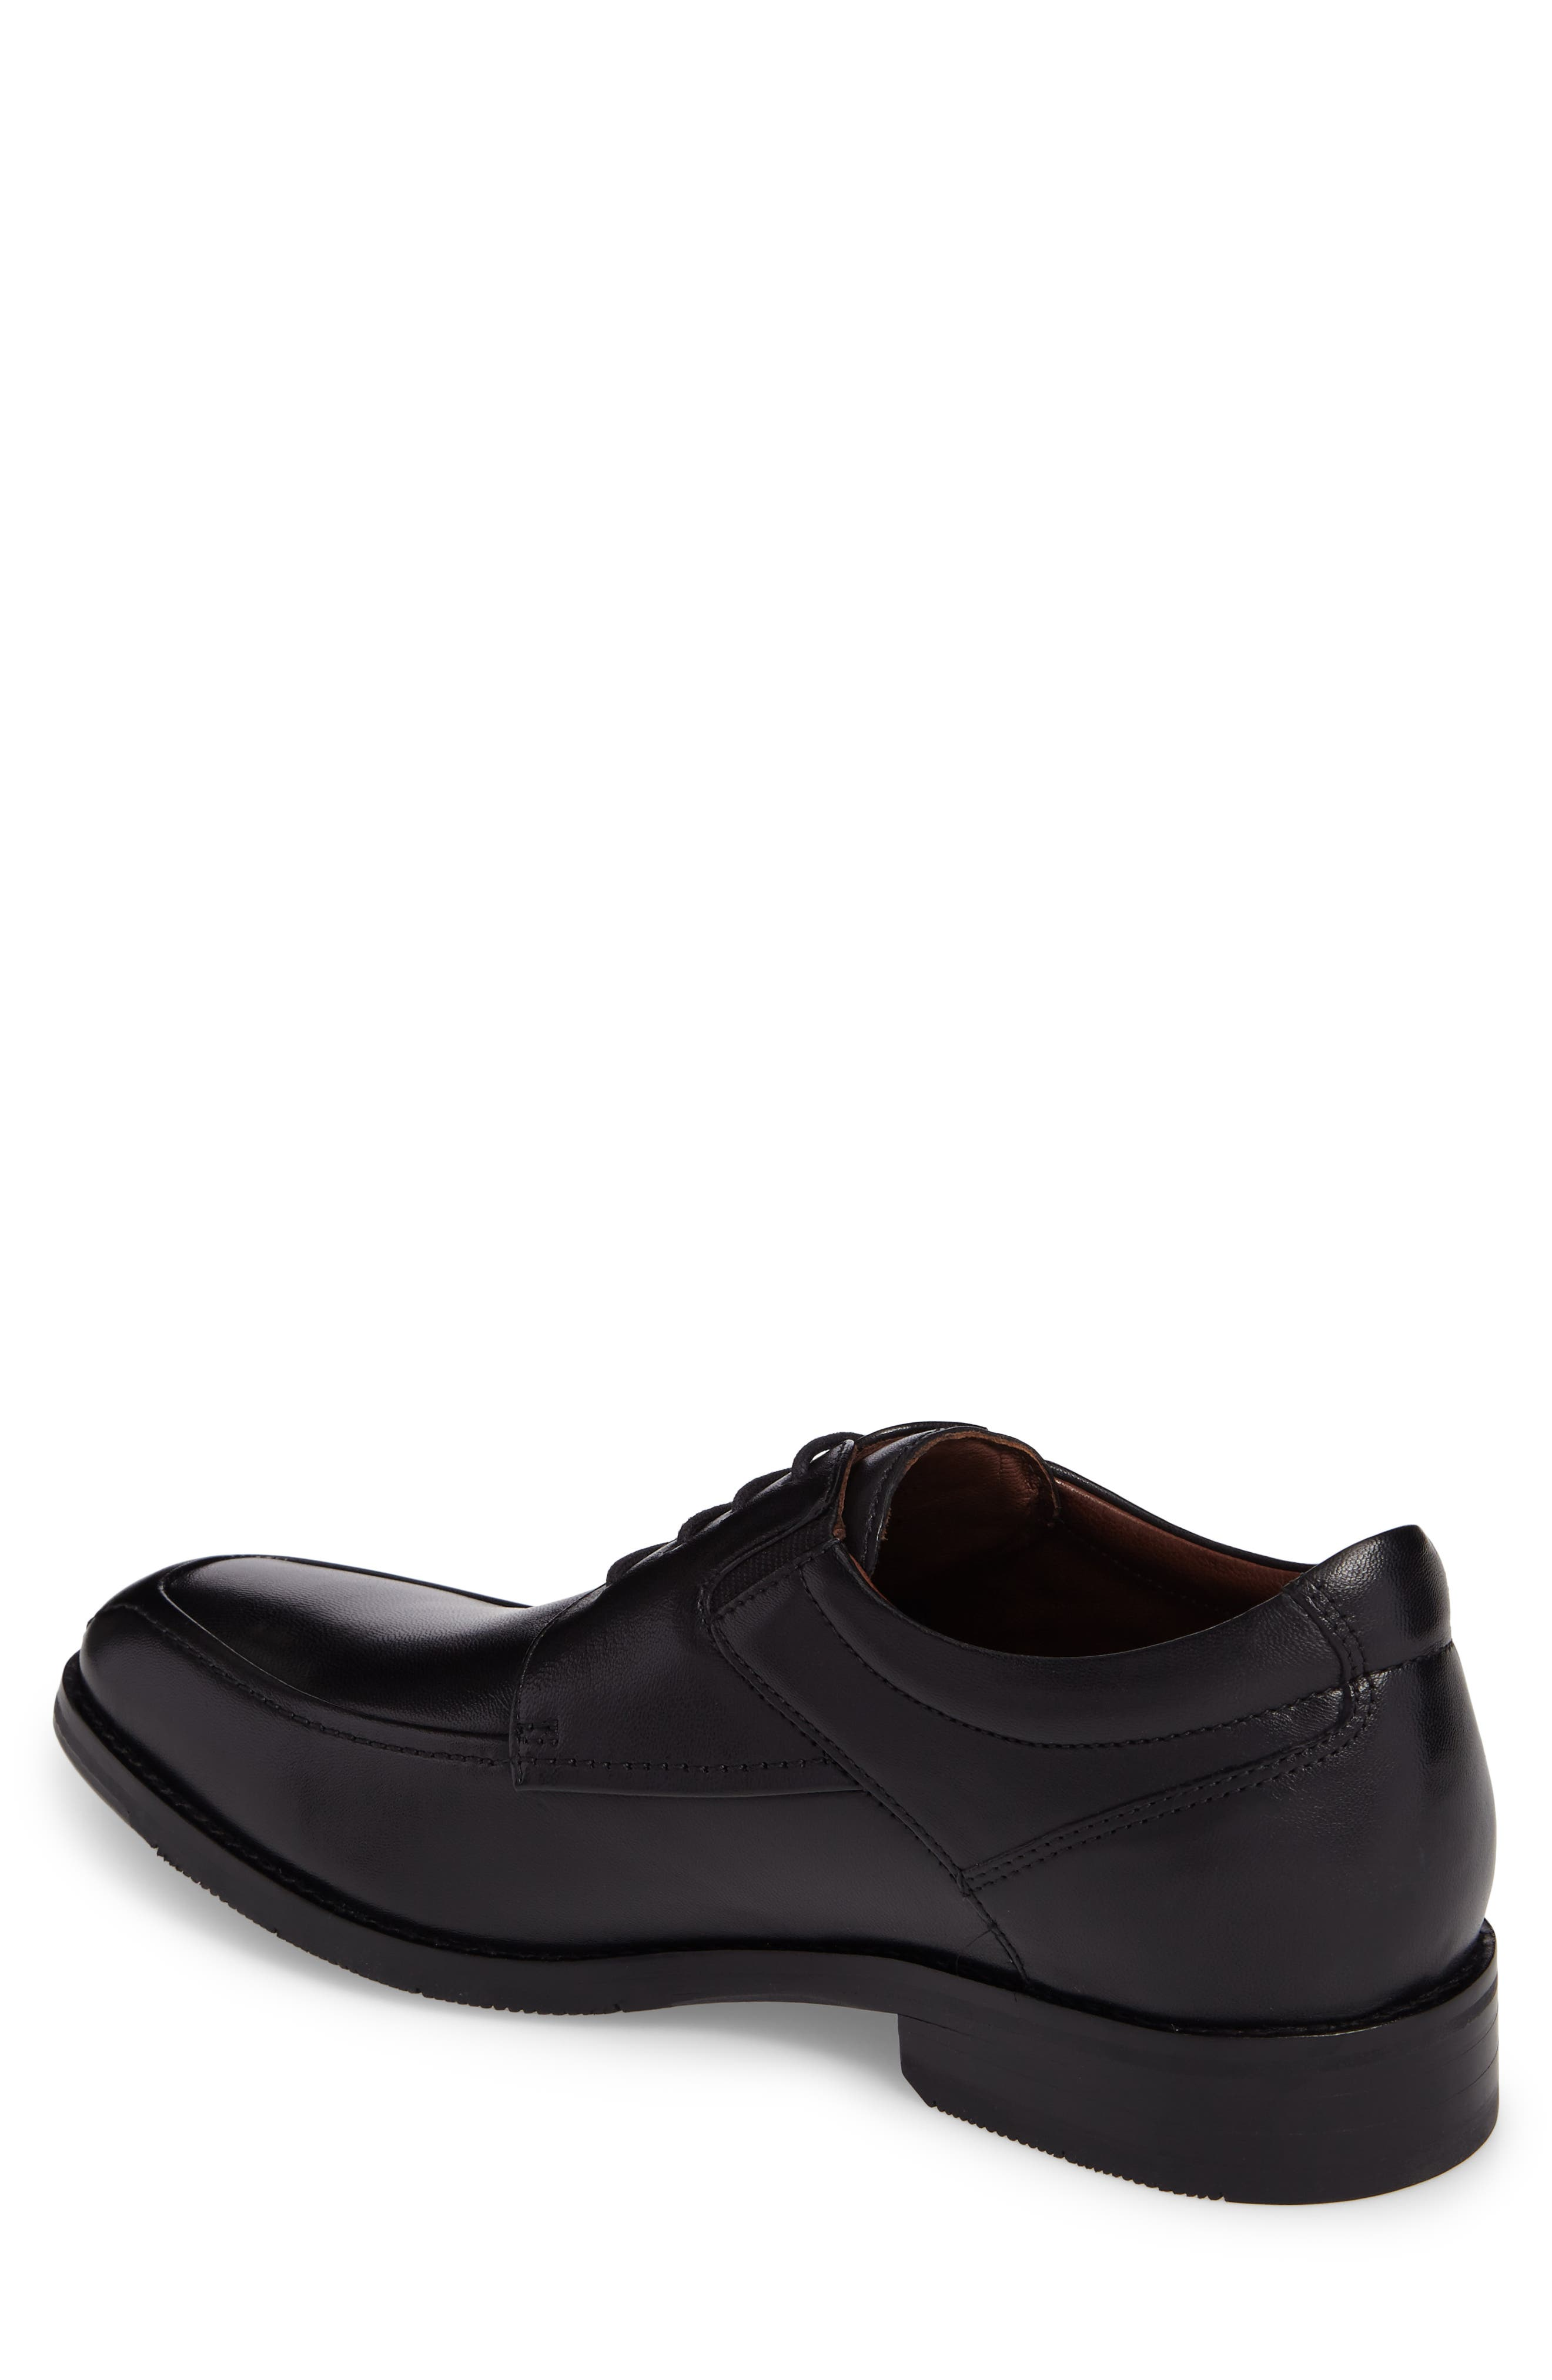 JOHNSTON & MURPHY, Apron Toe Derby, Alternate thumbnail 2, color, BLACK